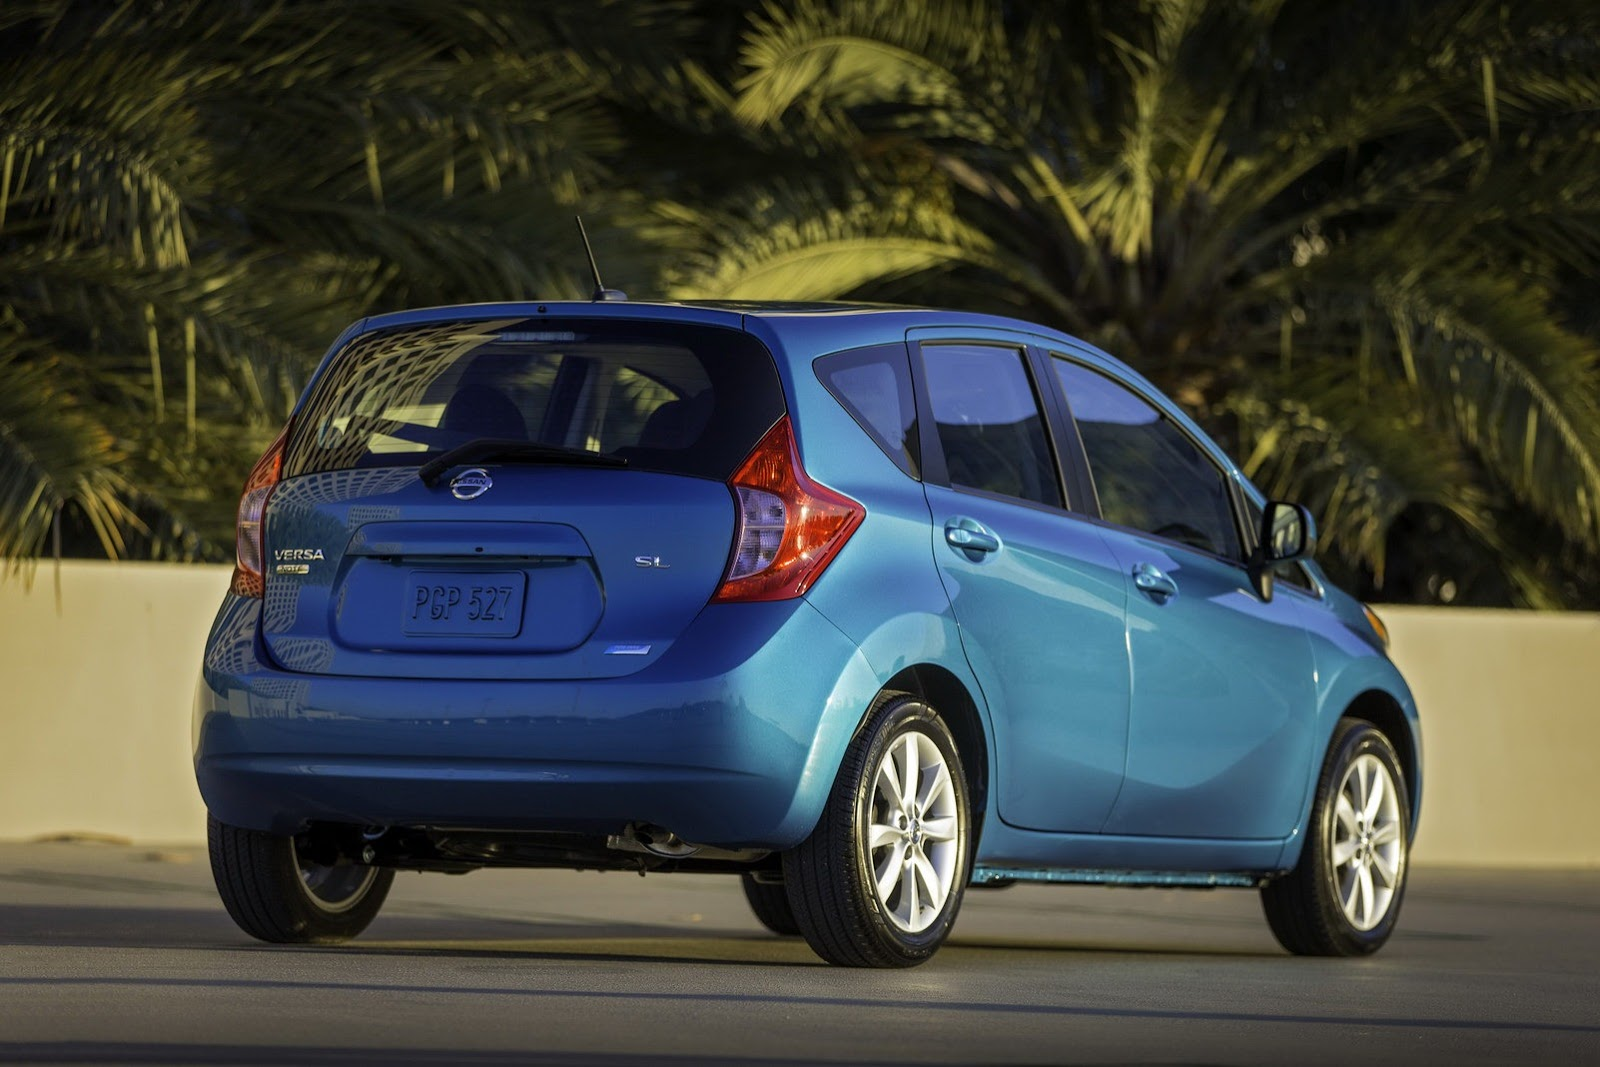 new 2014 nissan versa note hatchback photos and details video autotribute. Black Bedroom Furniture Sets. Home Design Ideas